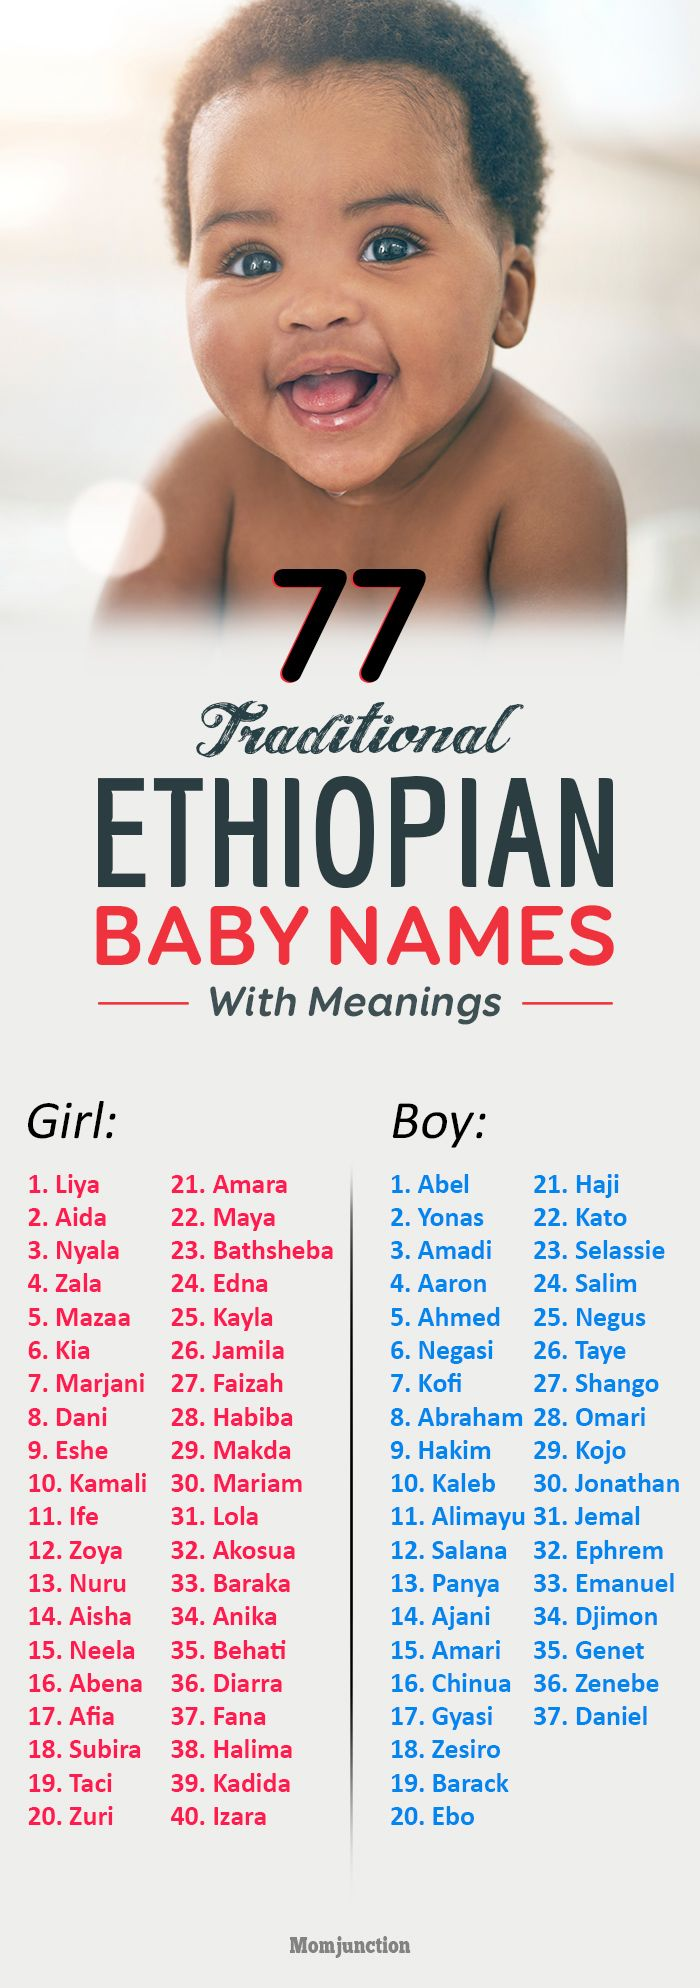 African Boy Names: 77 Traditional Ethiopian Baby Names With Meanings